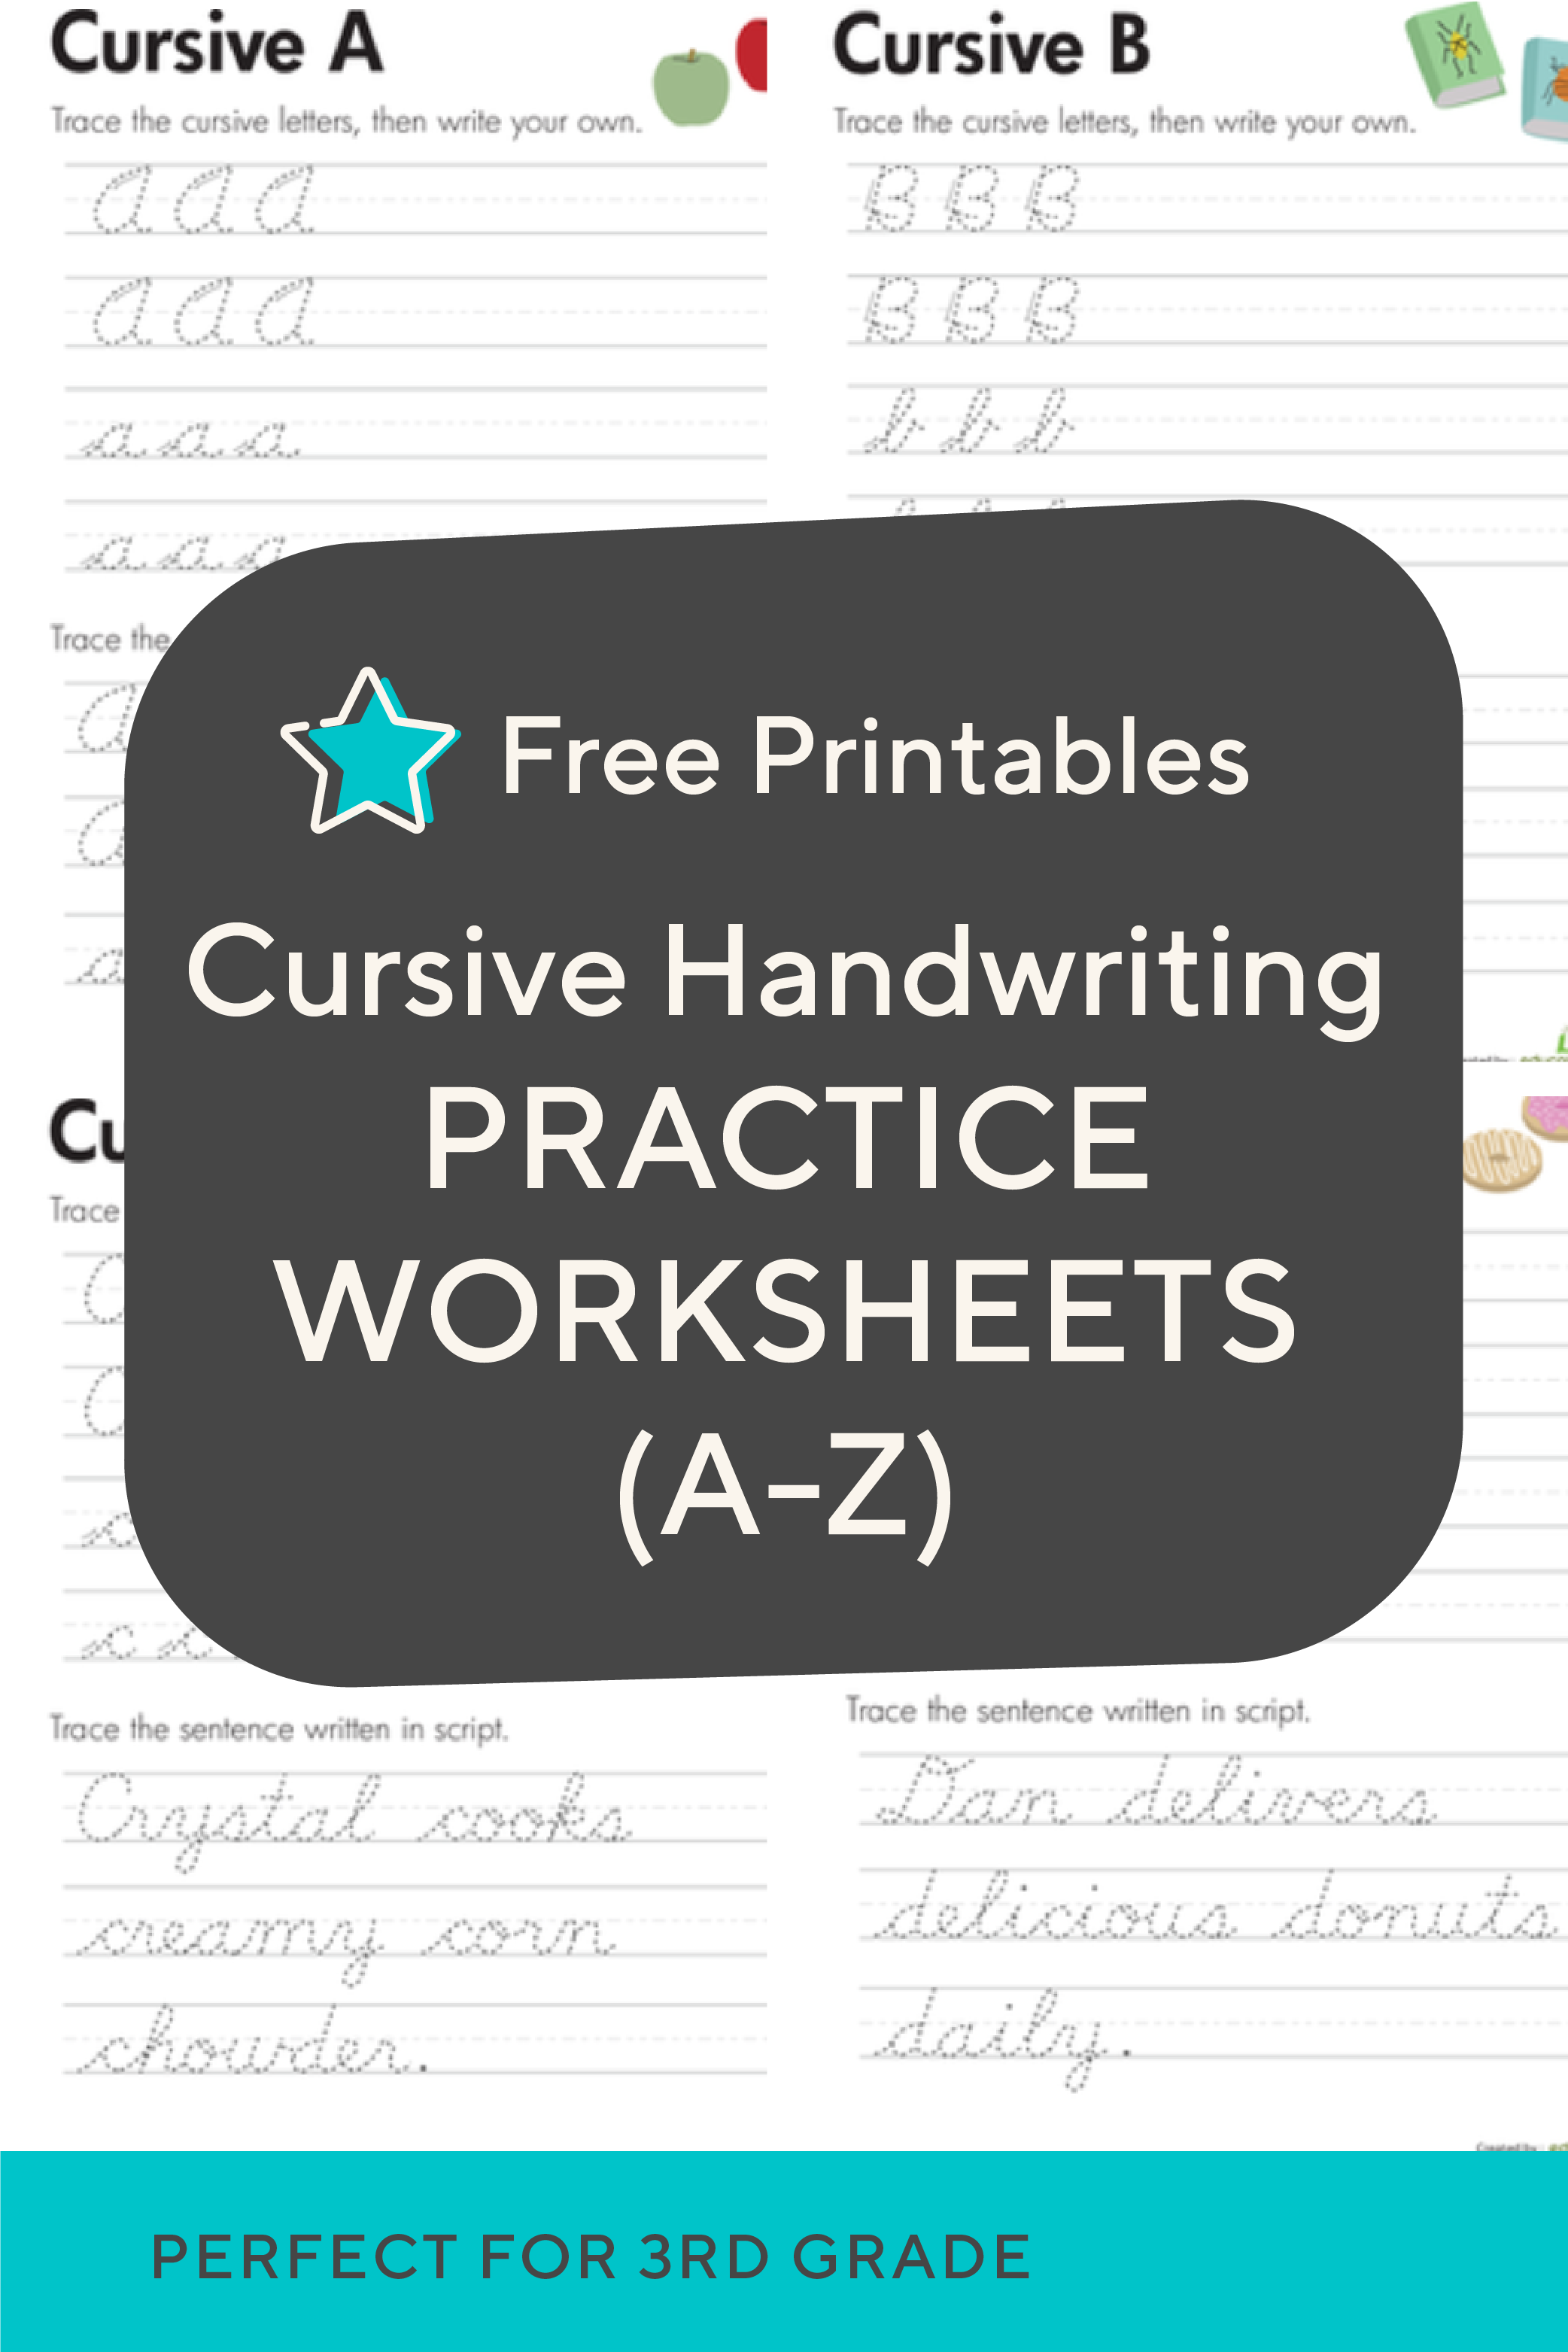 Practice cursive letters A-Z with free cursive handwriting worksheets.  These a…   Cursive handwriting practice [ 3126 x 2084 Pixel ]